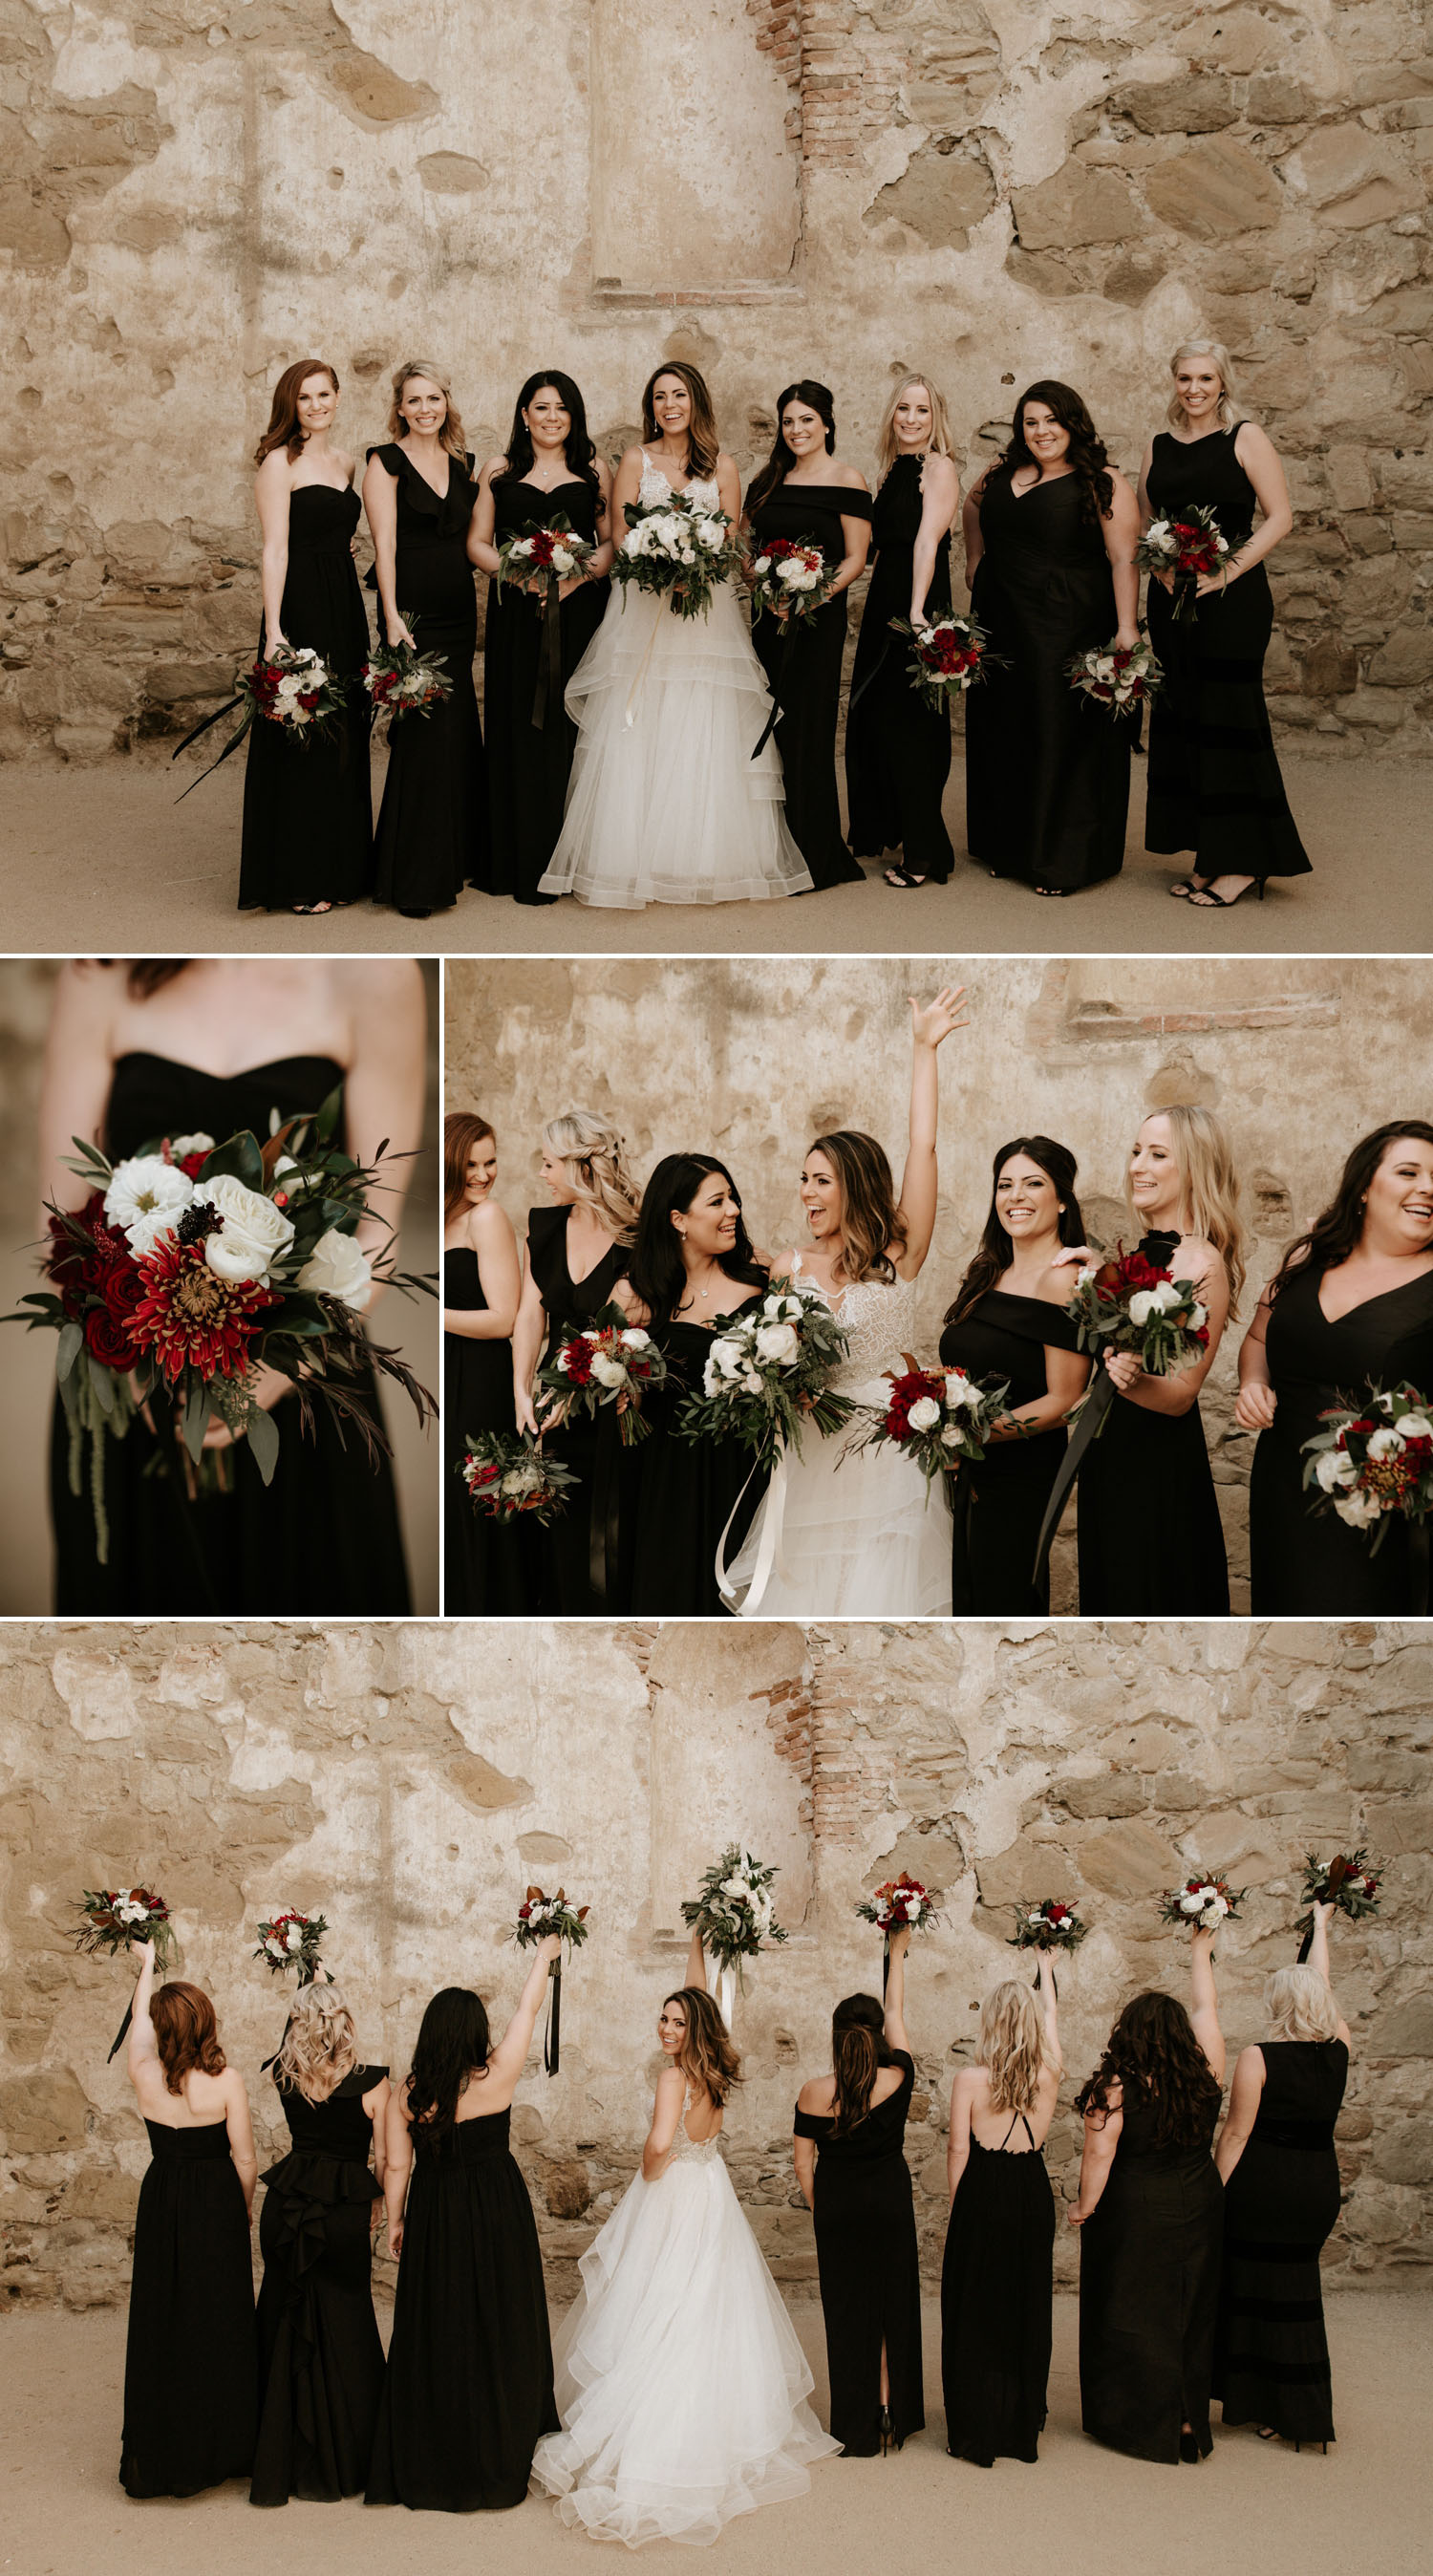 All black wedding party attire by san diego wedding photographer Paige Nelson